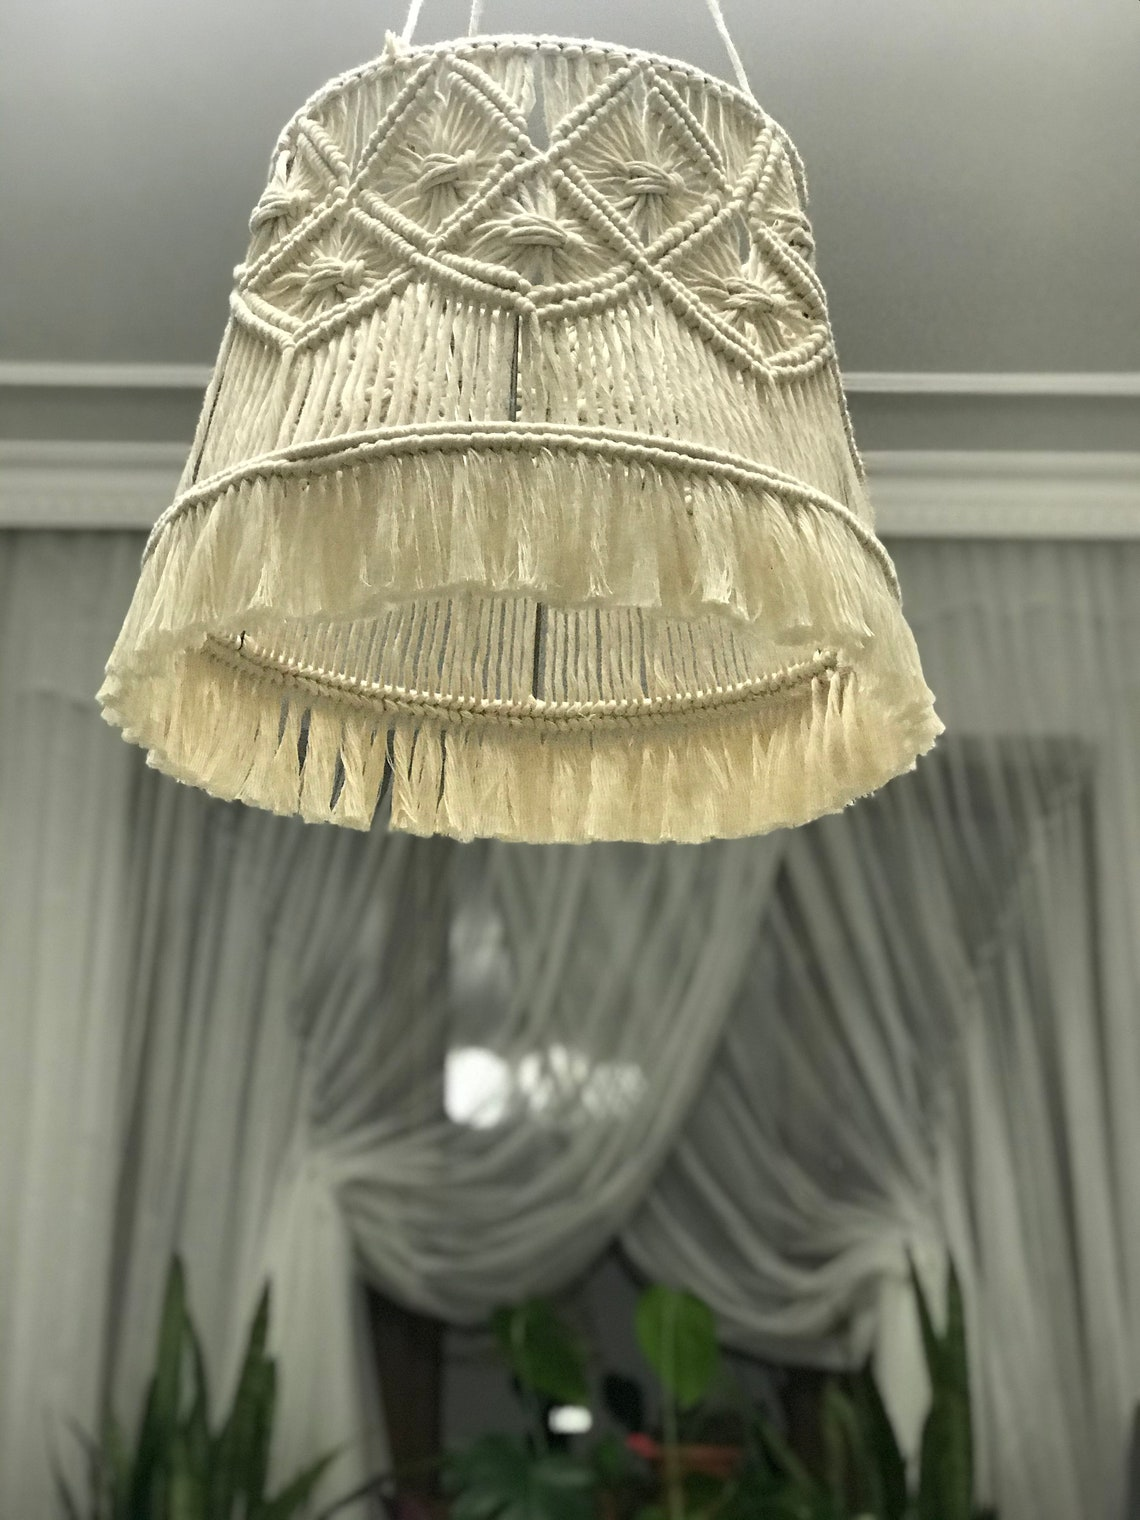 Modern Macrame Lamp Shades For Kids Decorative Handmade Bedroom Chandelier Tassels Lampshade Nursery Gifts Boho Lampshade